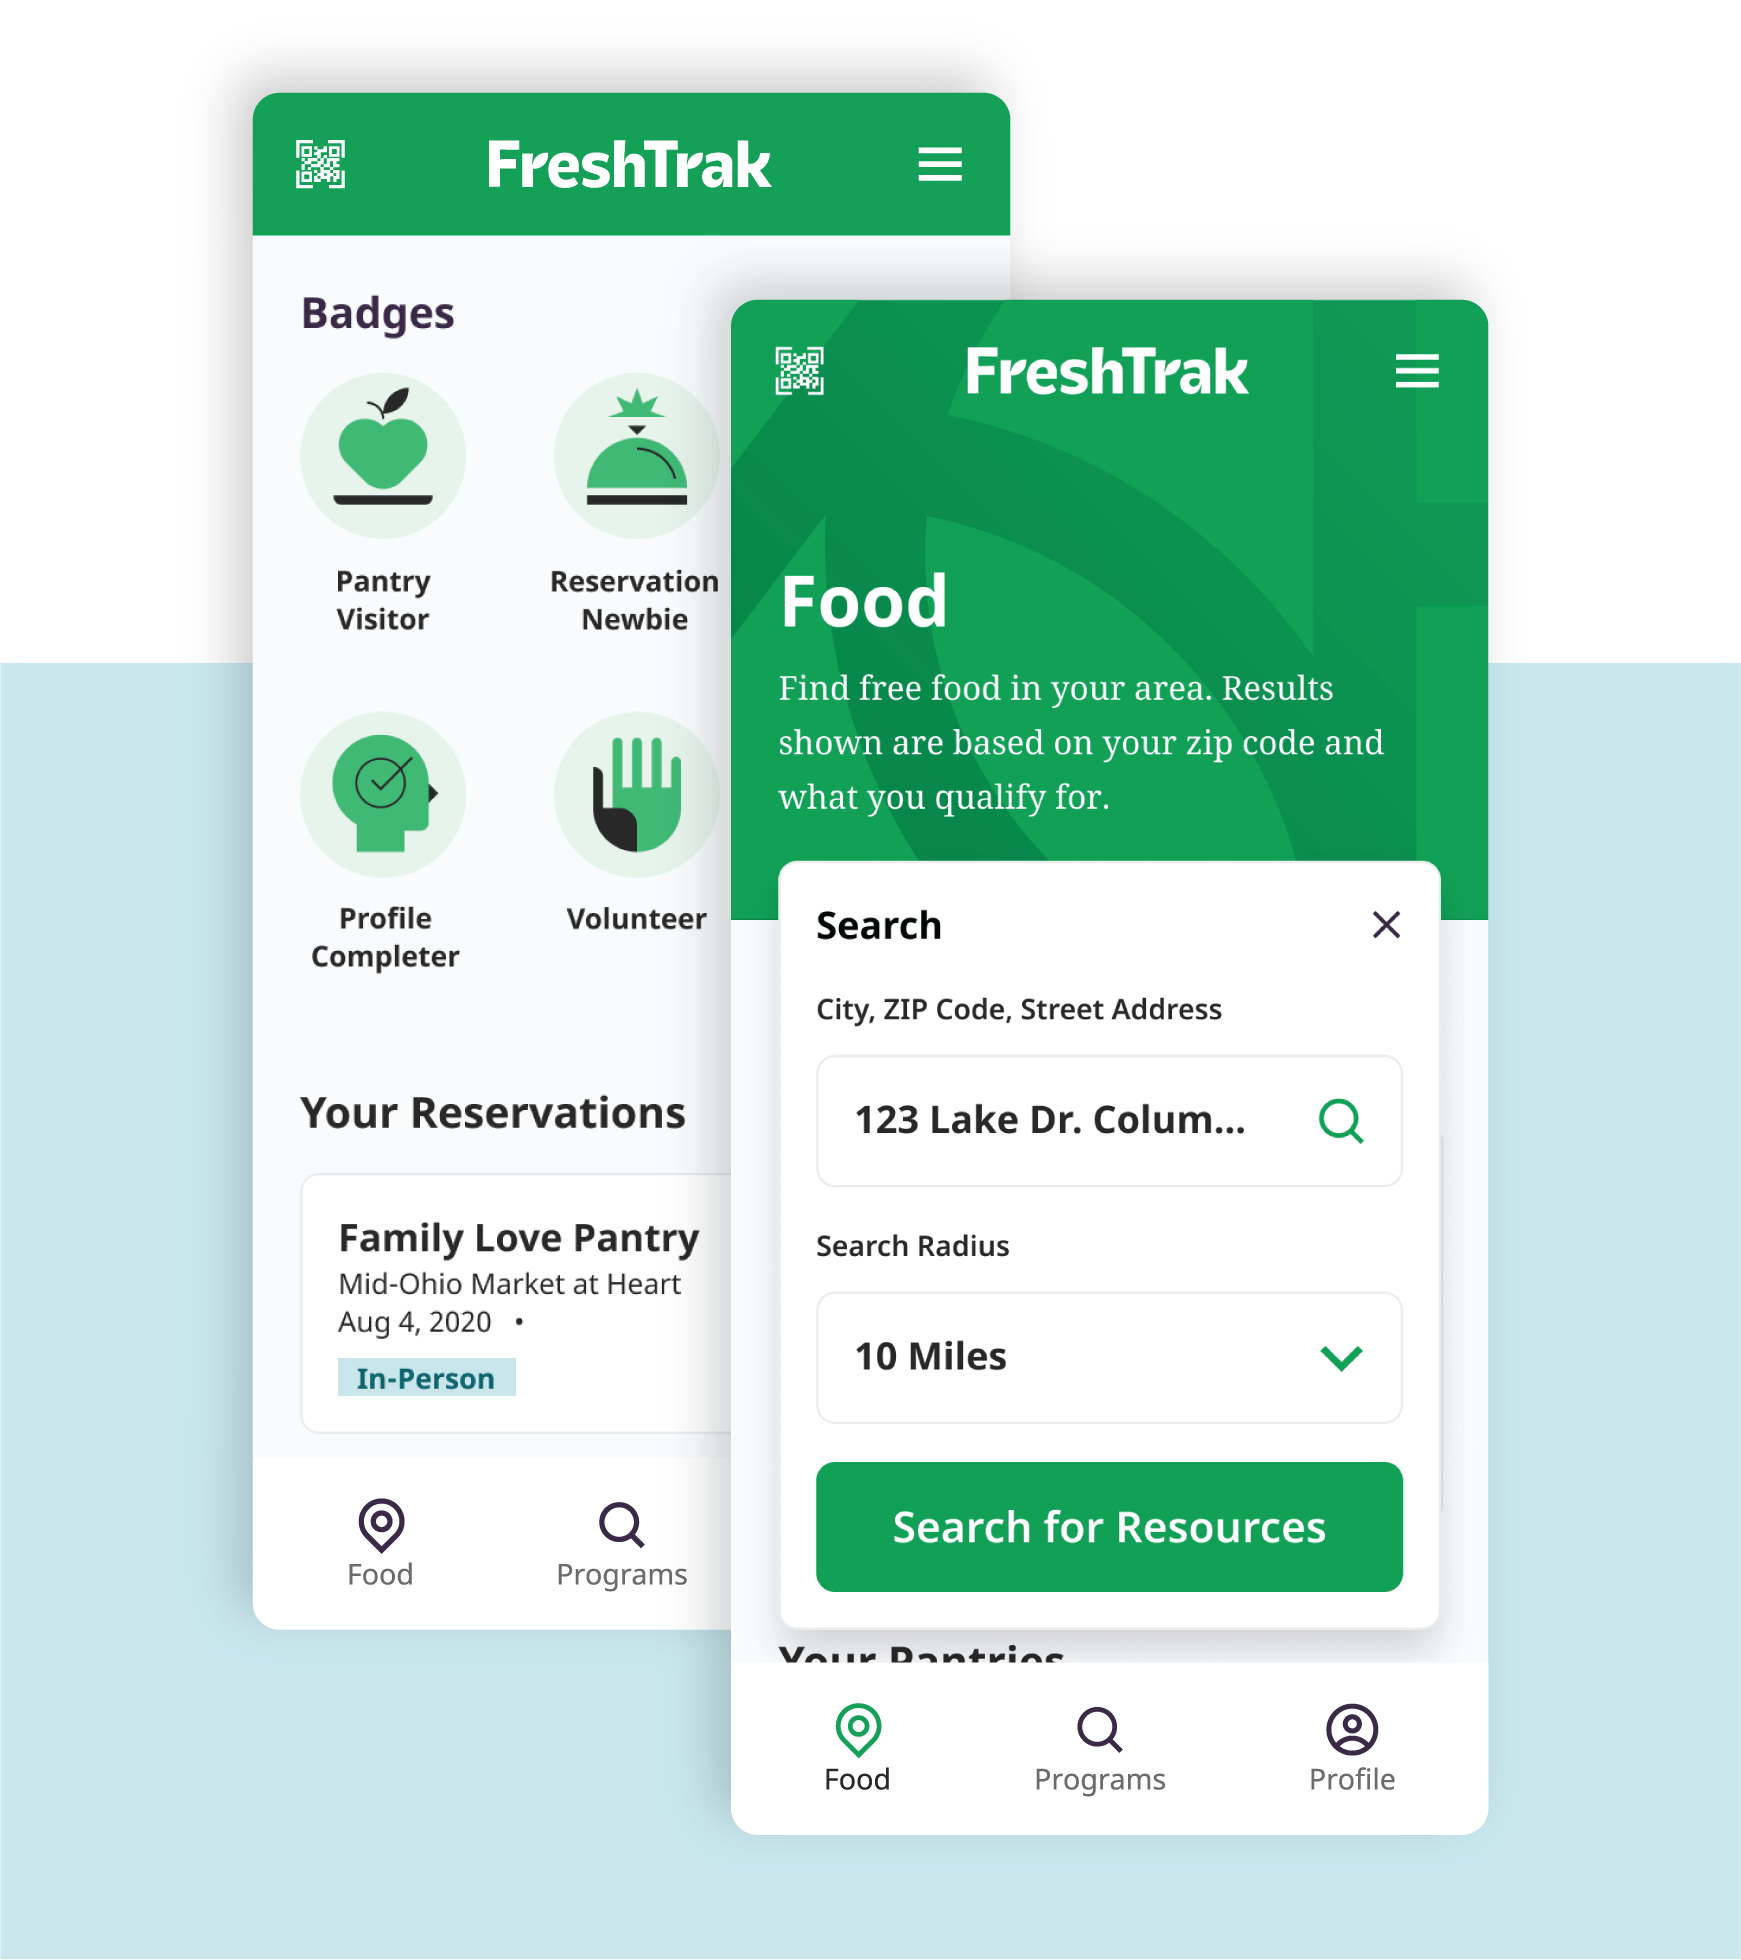 FreshTrak Mobile Screens